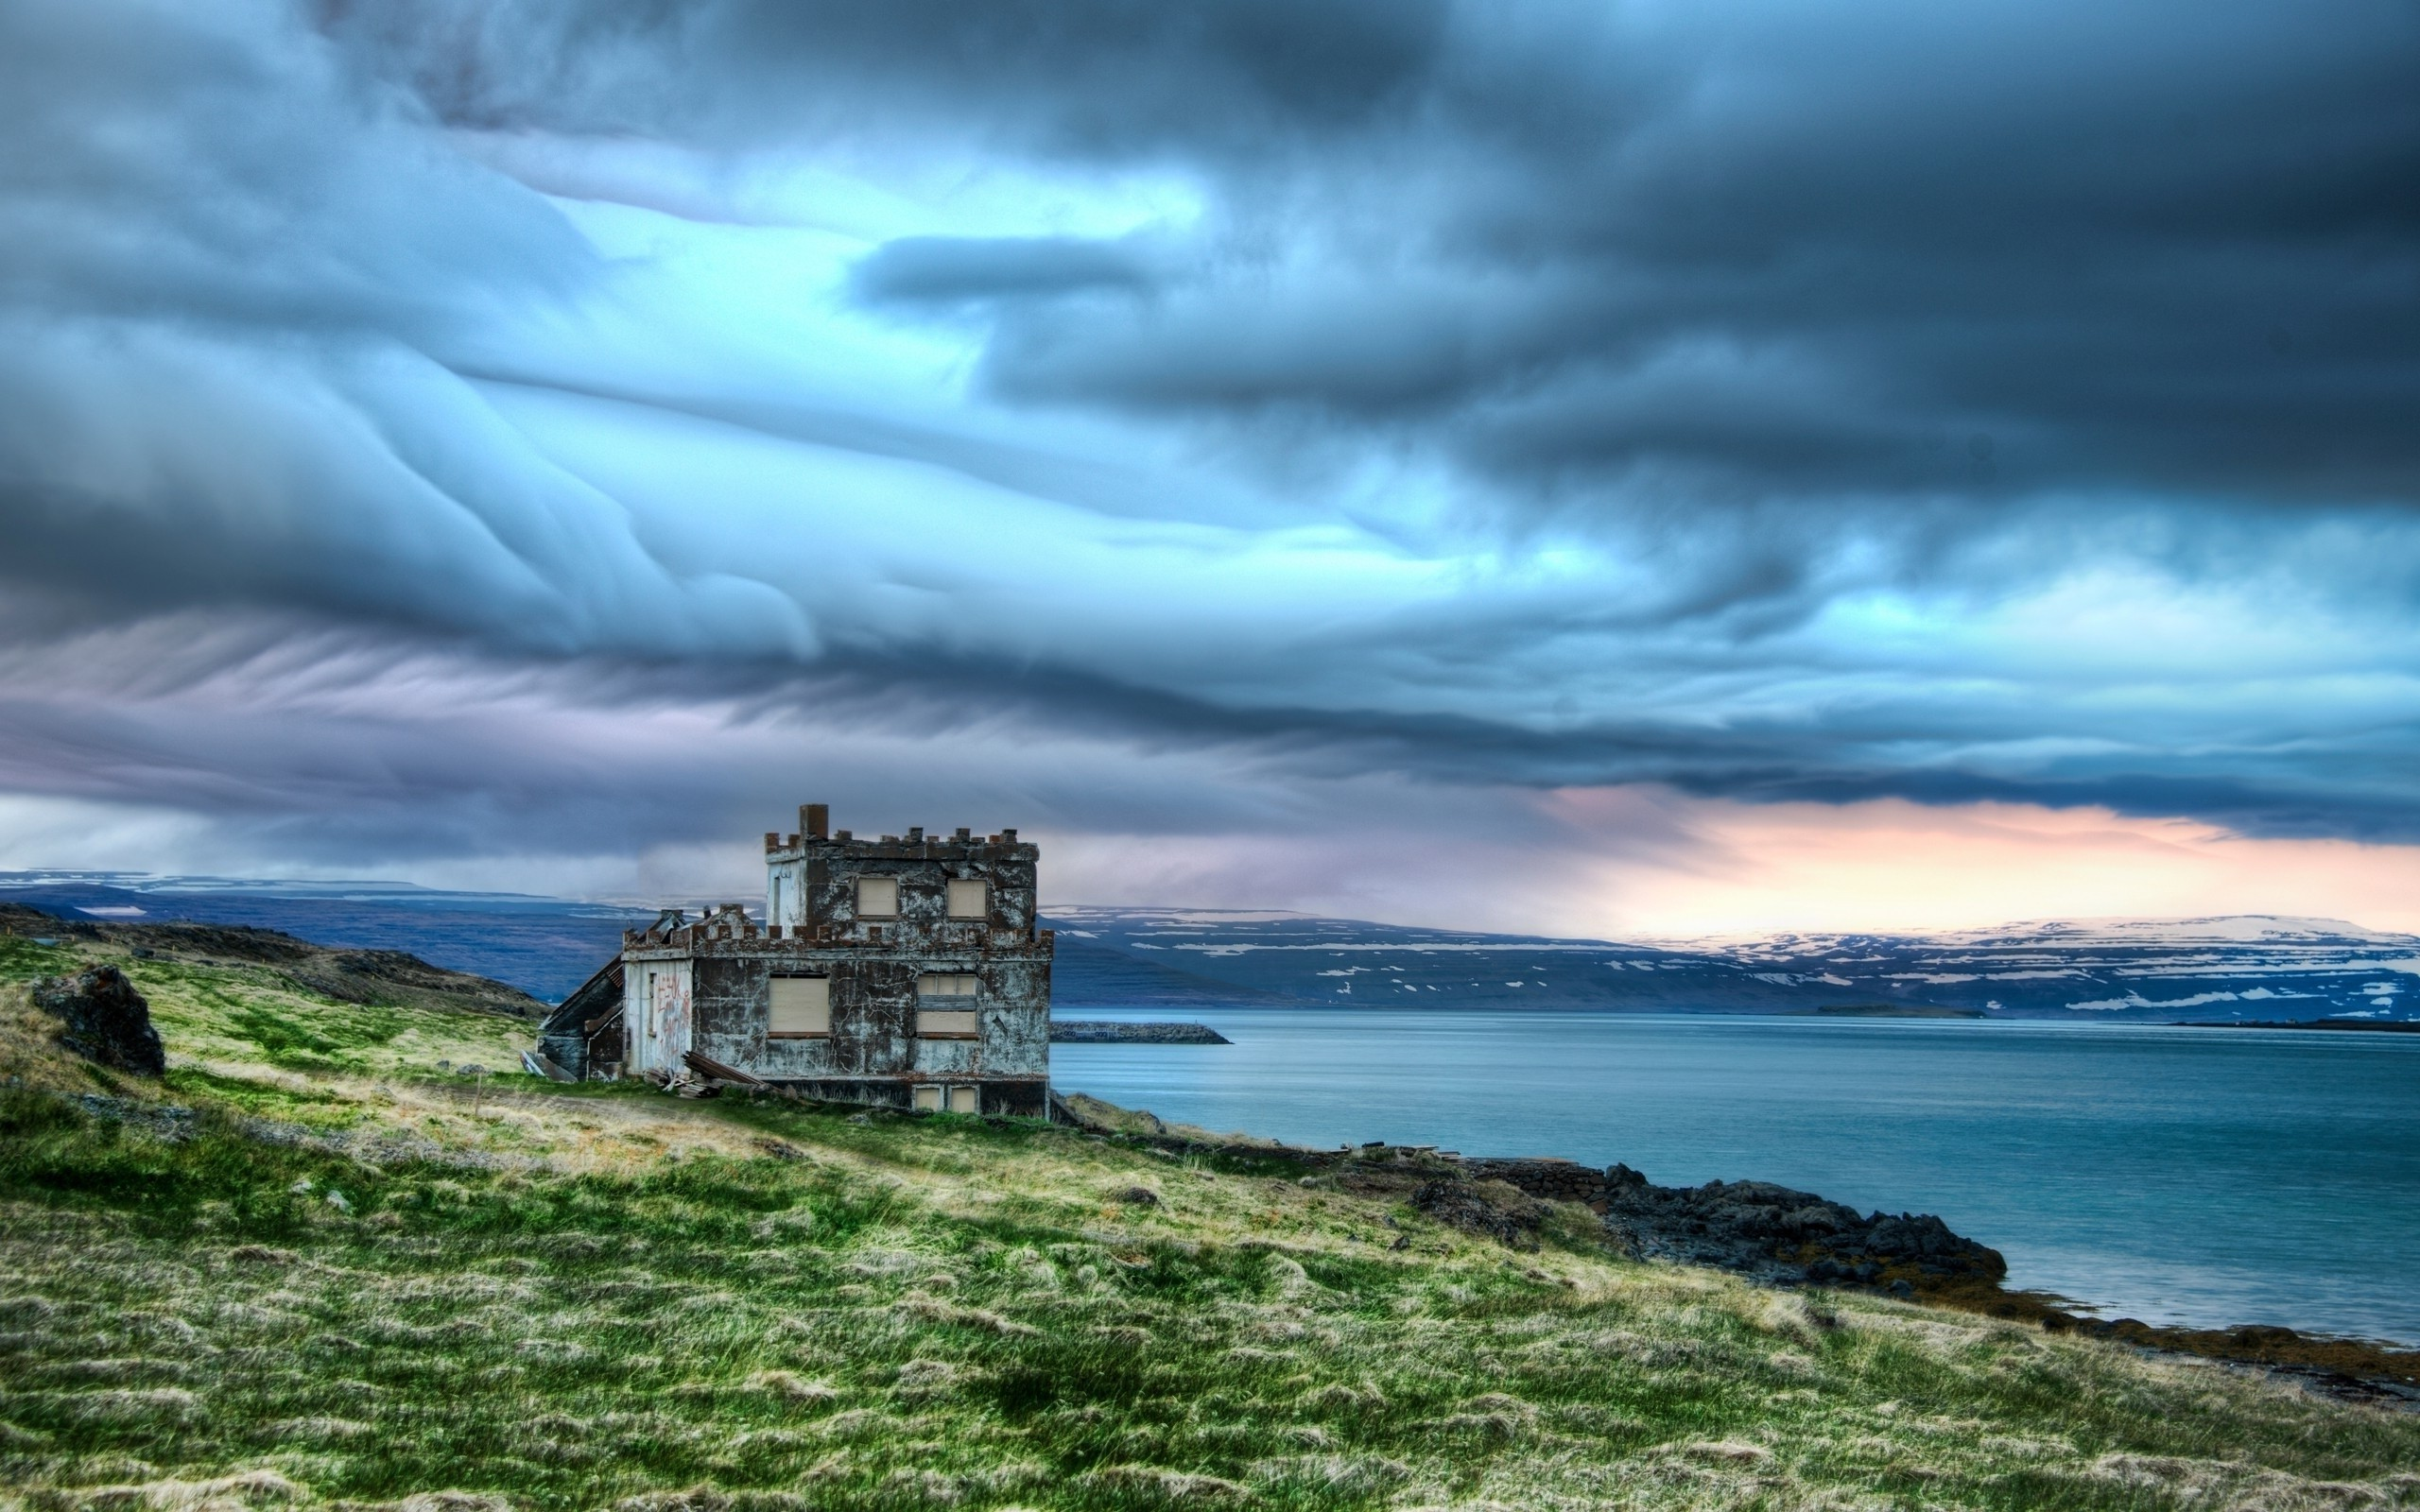 4k Wallpaper 3d National Geographic Nature Castle Iceland Clouds Landscape Hdr Wallpapers